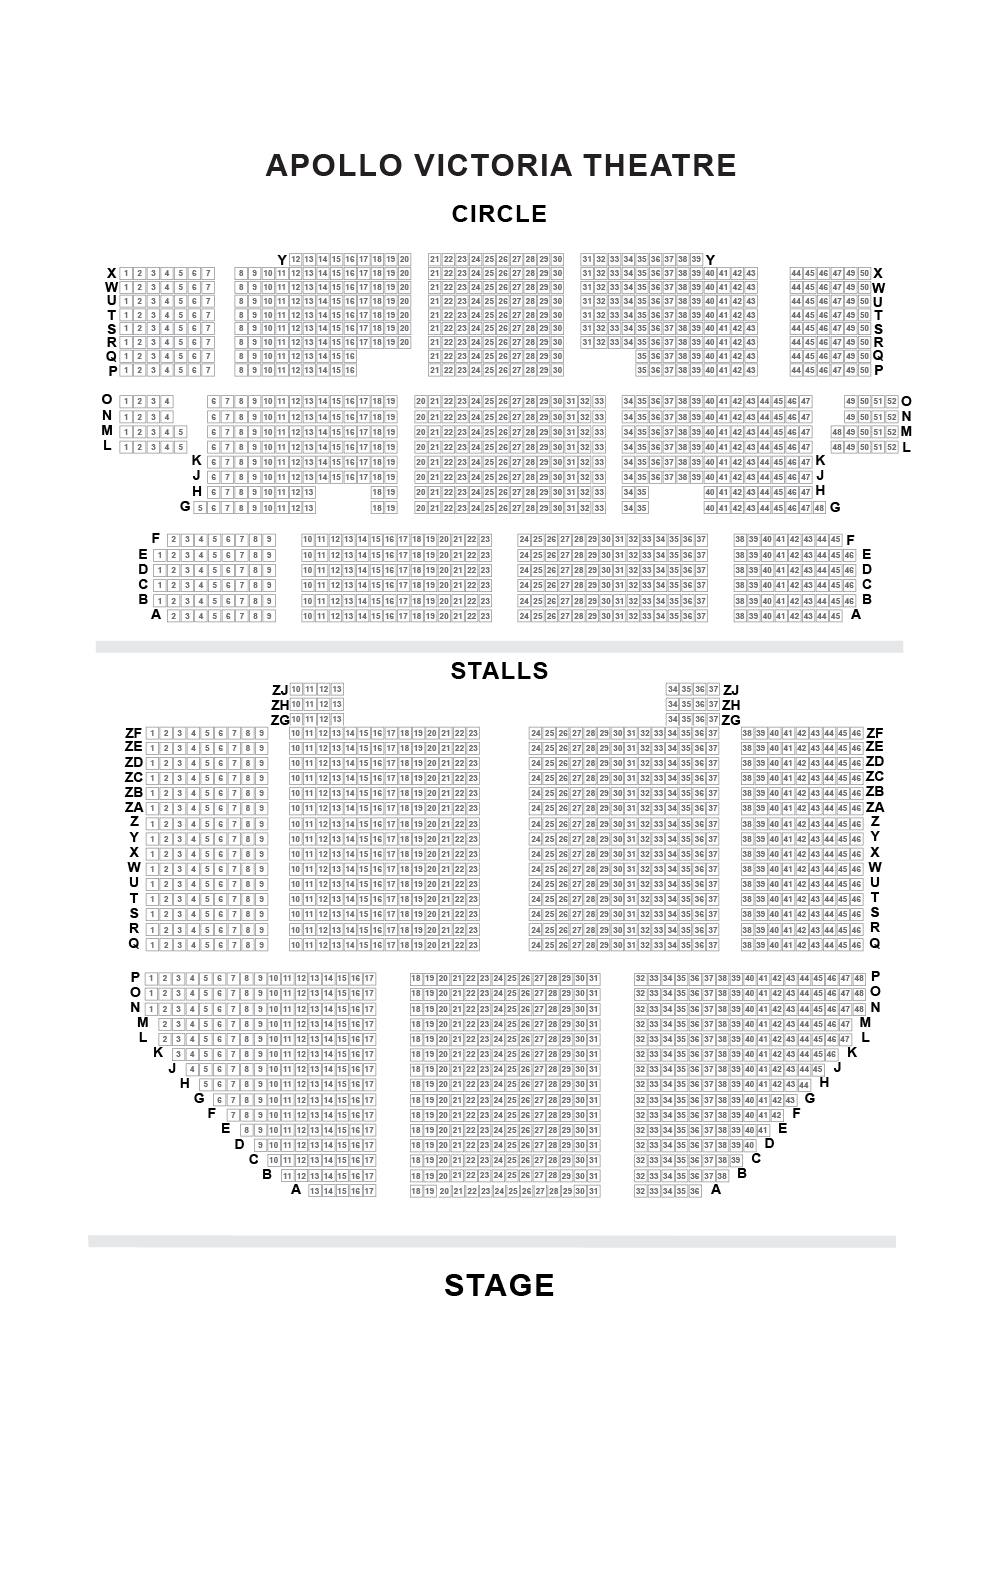 Apollo Victoria Theatre Seating Plan